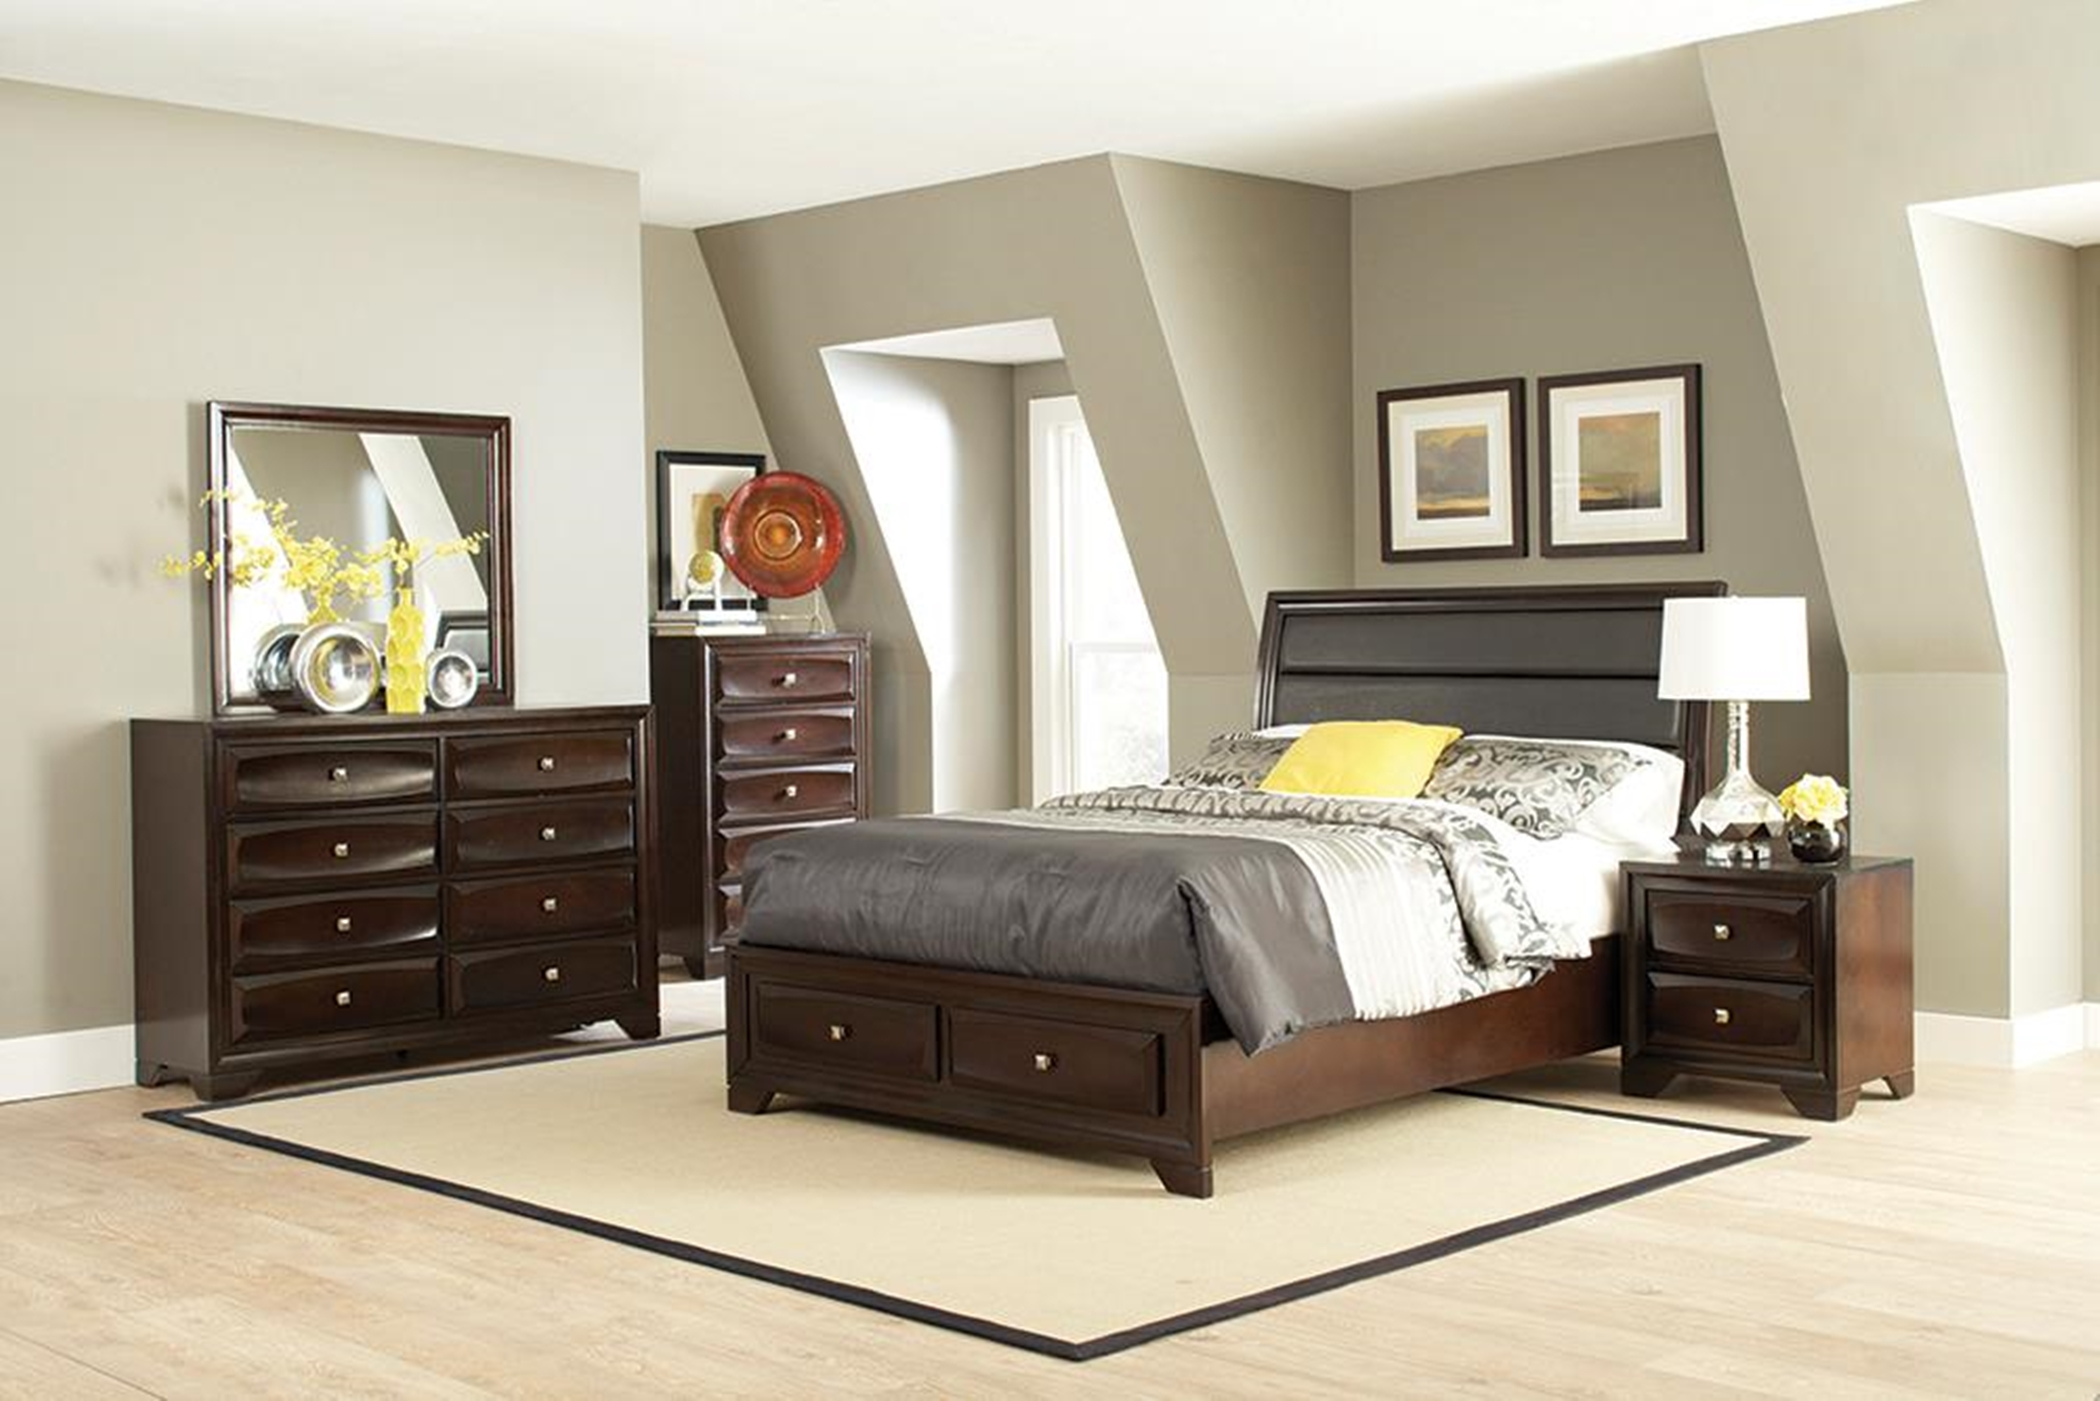 Jaxson Transitional Capp. Queen Bed